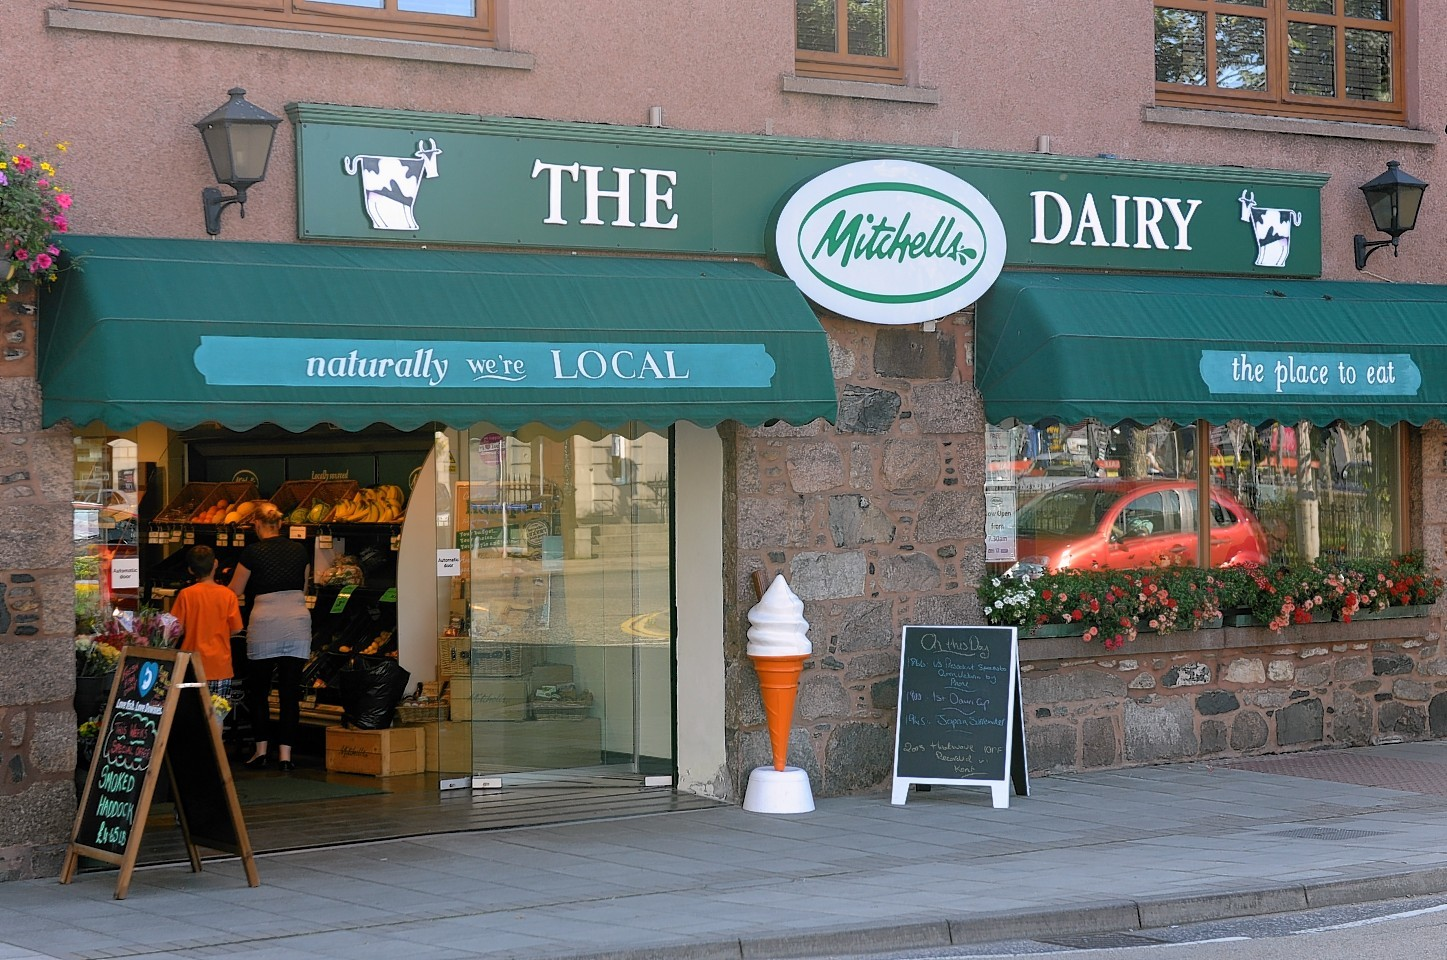 Mitchell's dairy has announced it will close on 26 October